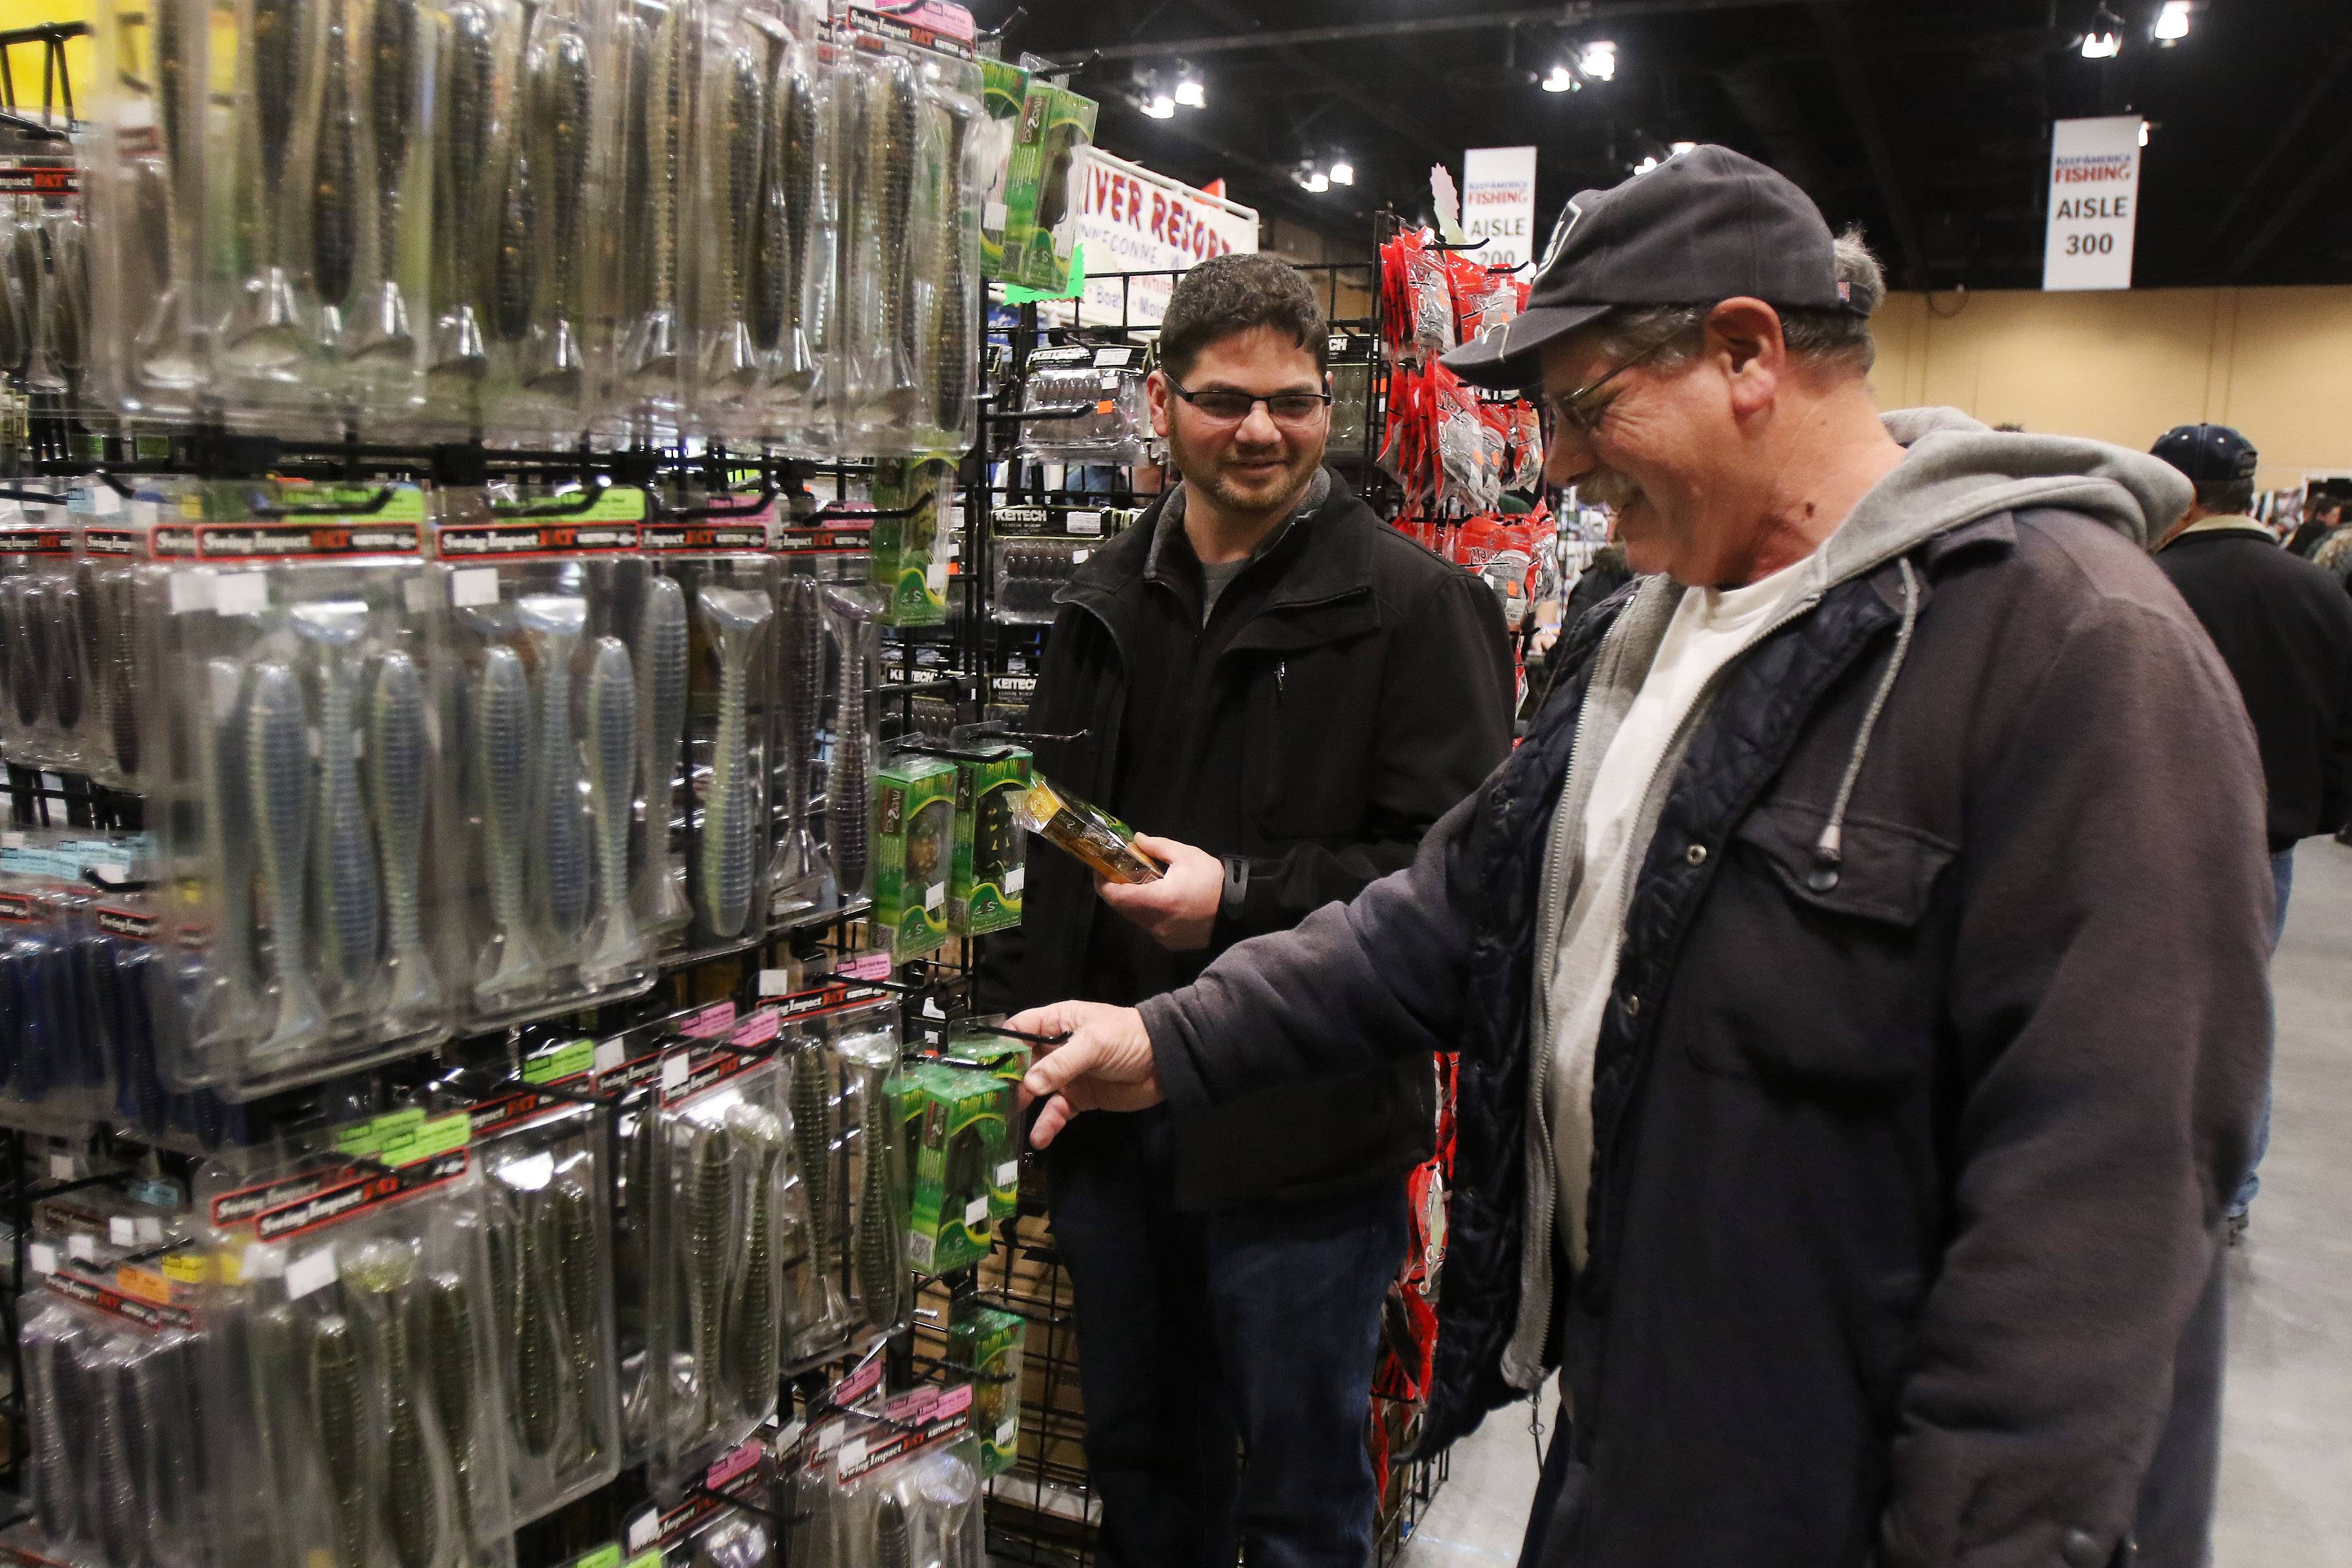 Bradley Paulus of Mount Prospect, left, talks to his dad, Cliff, about lures Sunday at the Anglers International Resources booth during the 6th Annual Chicagoland Fishing, Travel & Outdoor Expo at the Schaumburg Convention Center.